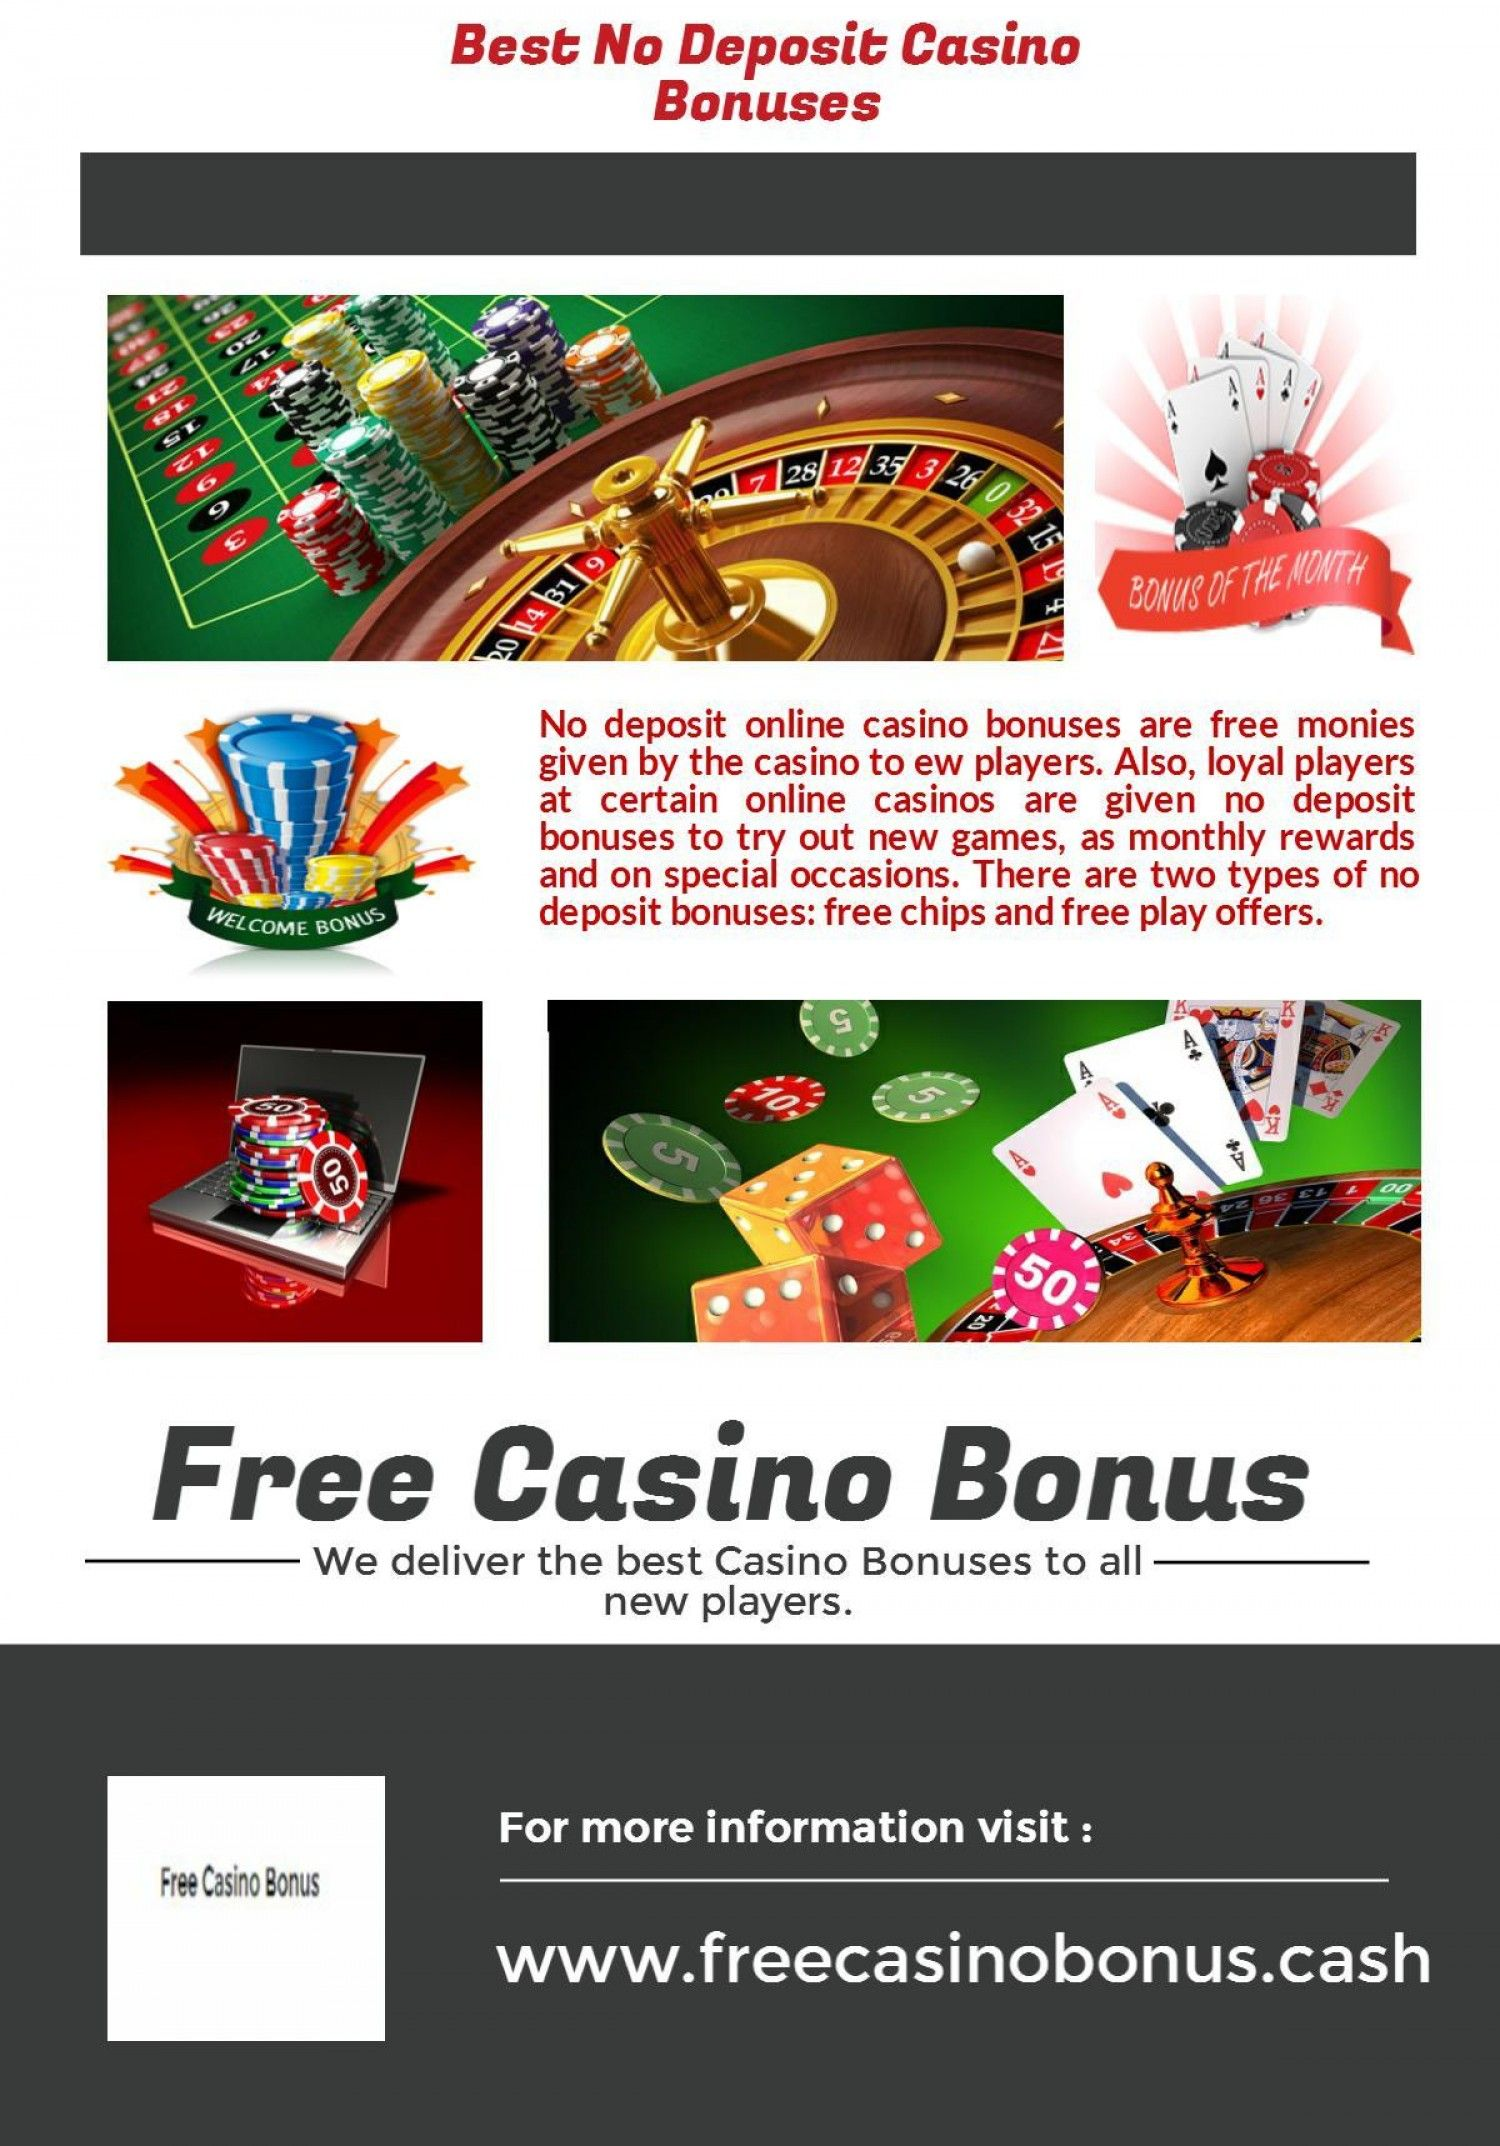 Top No Deposit Casino Bonuses